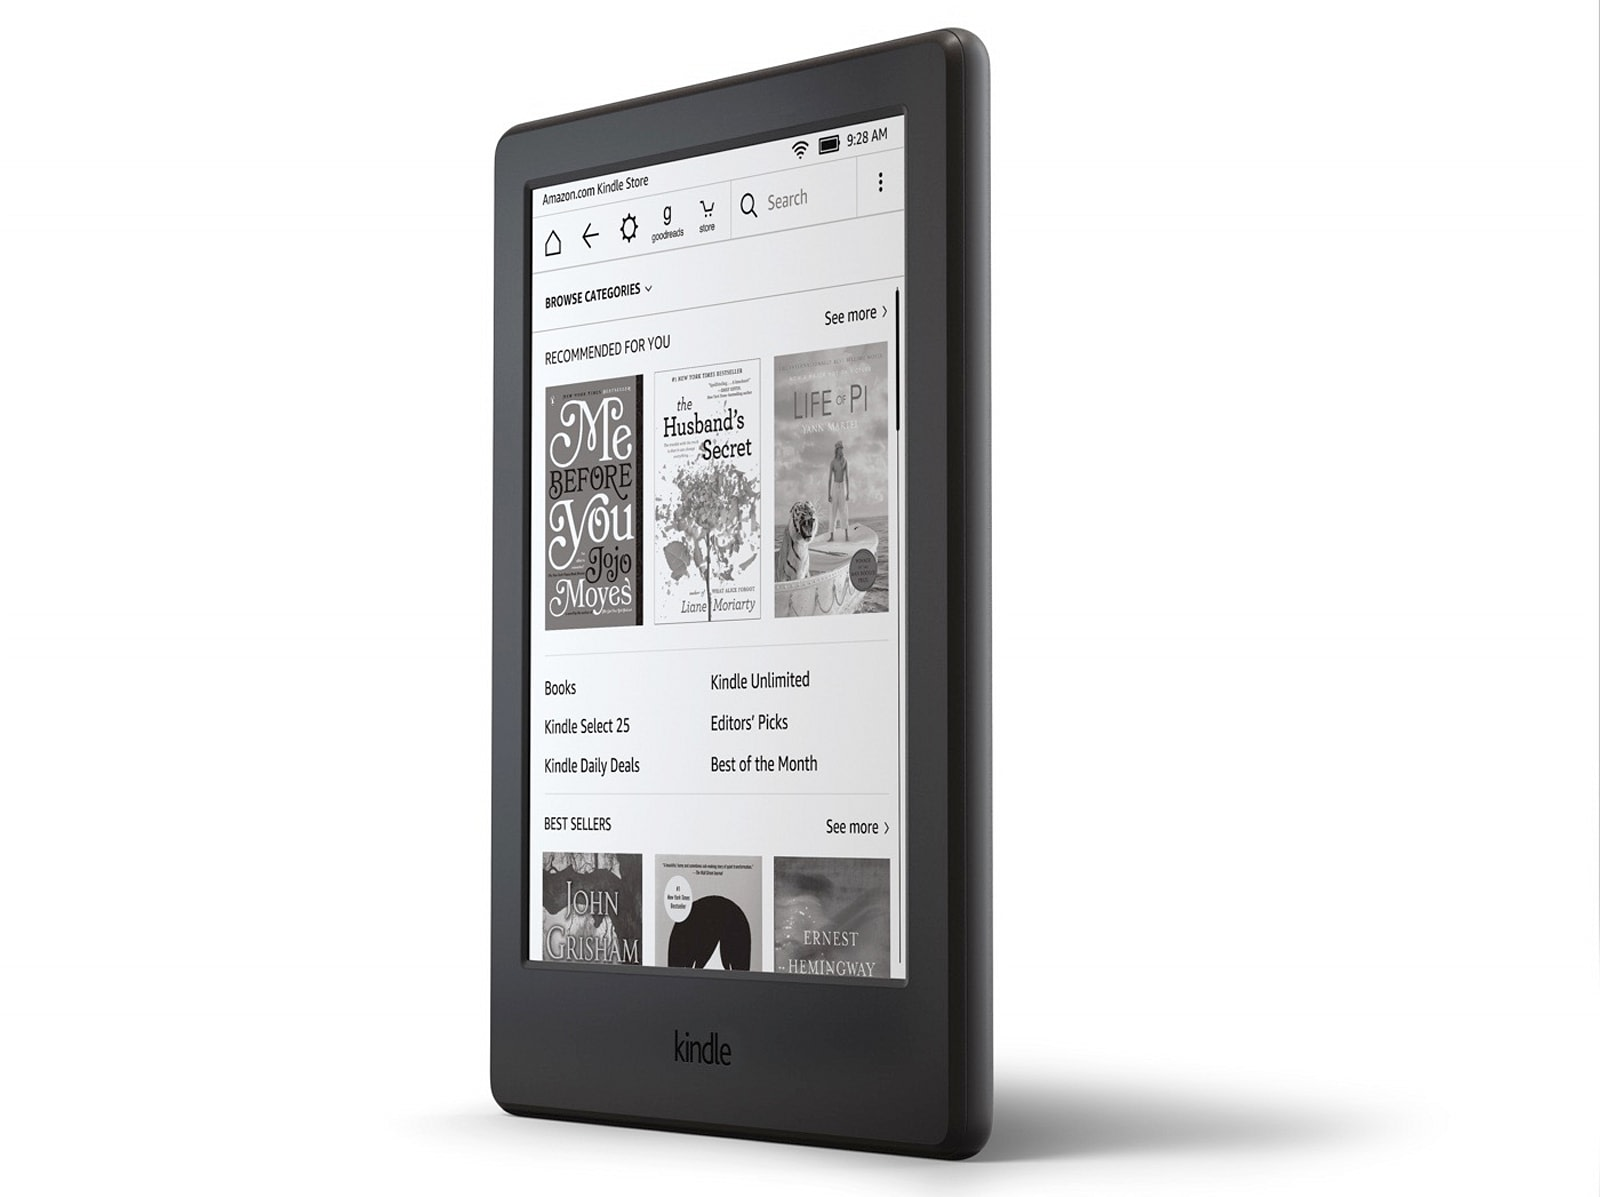 New Amazon Kindle, Very Much Like the One it Replaces